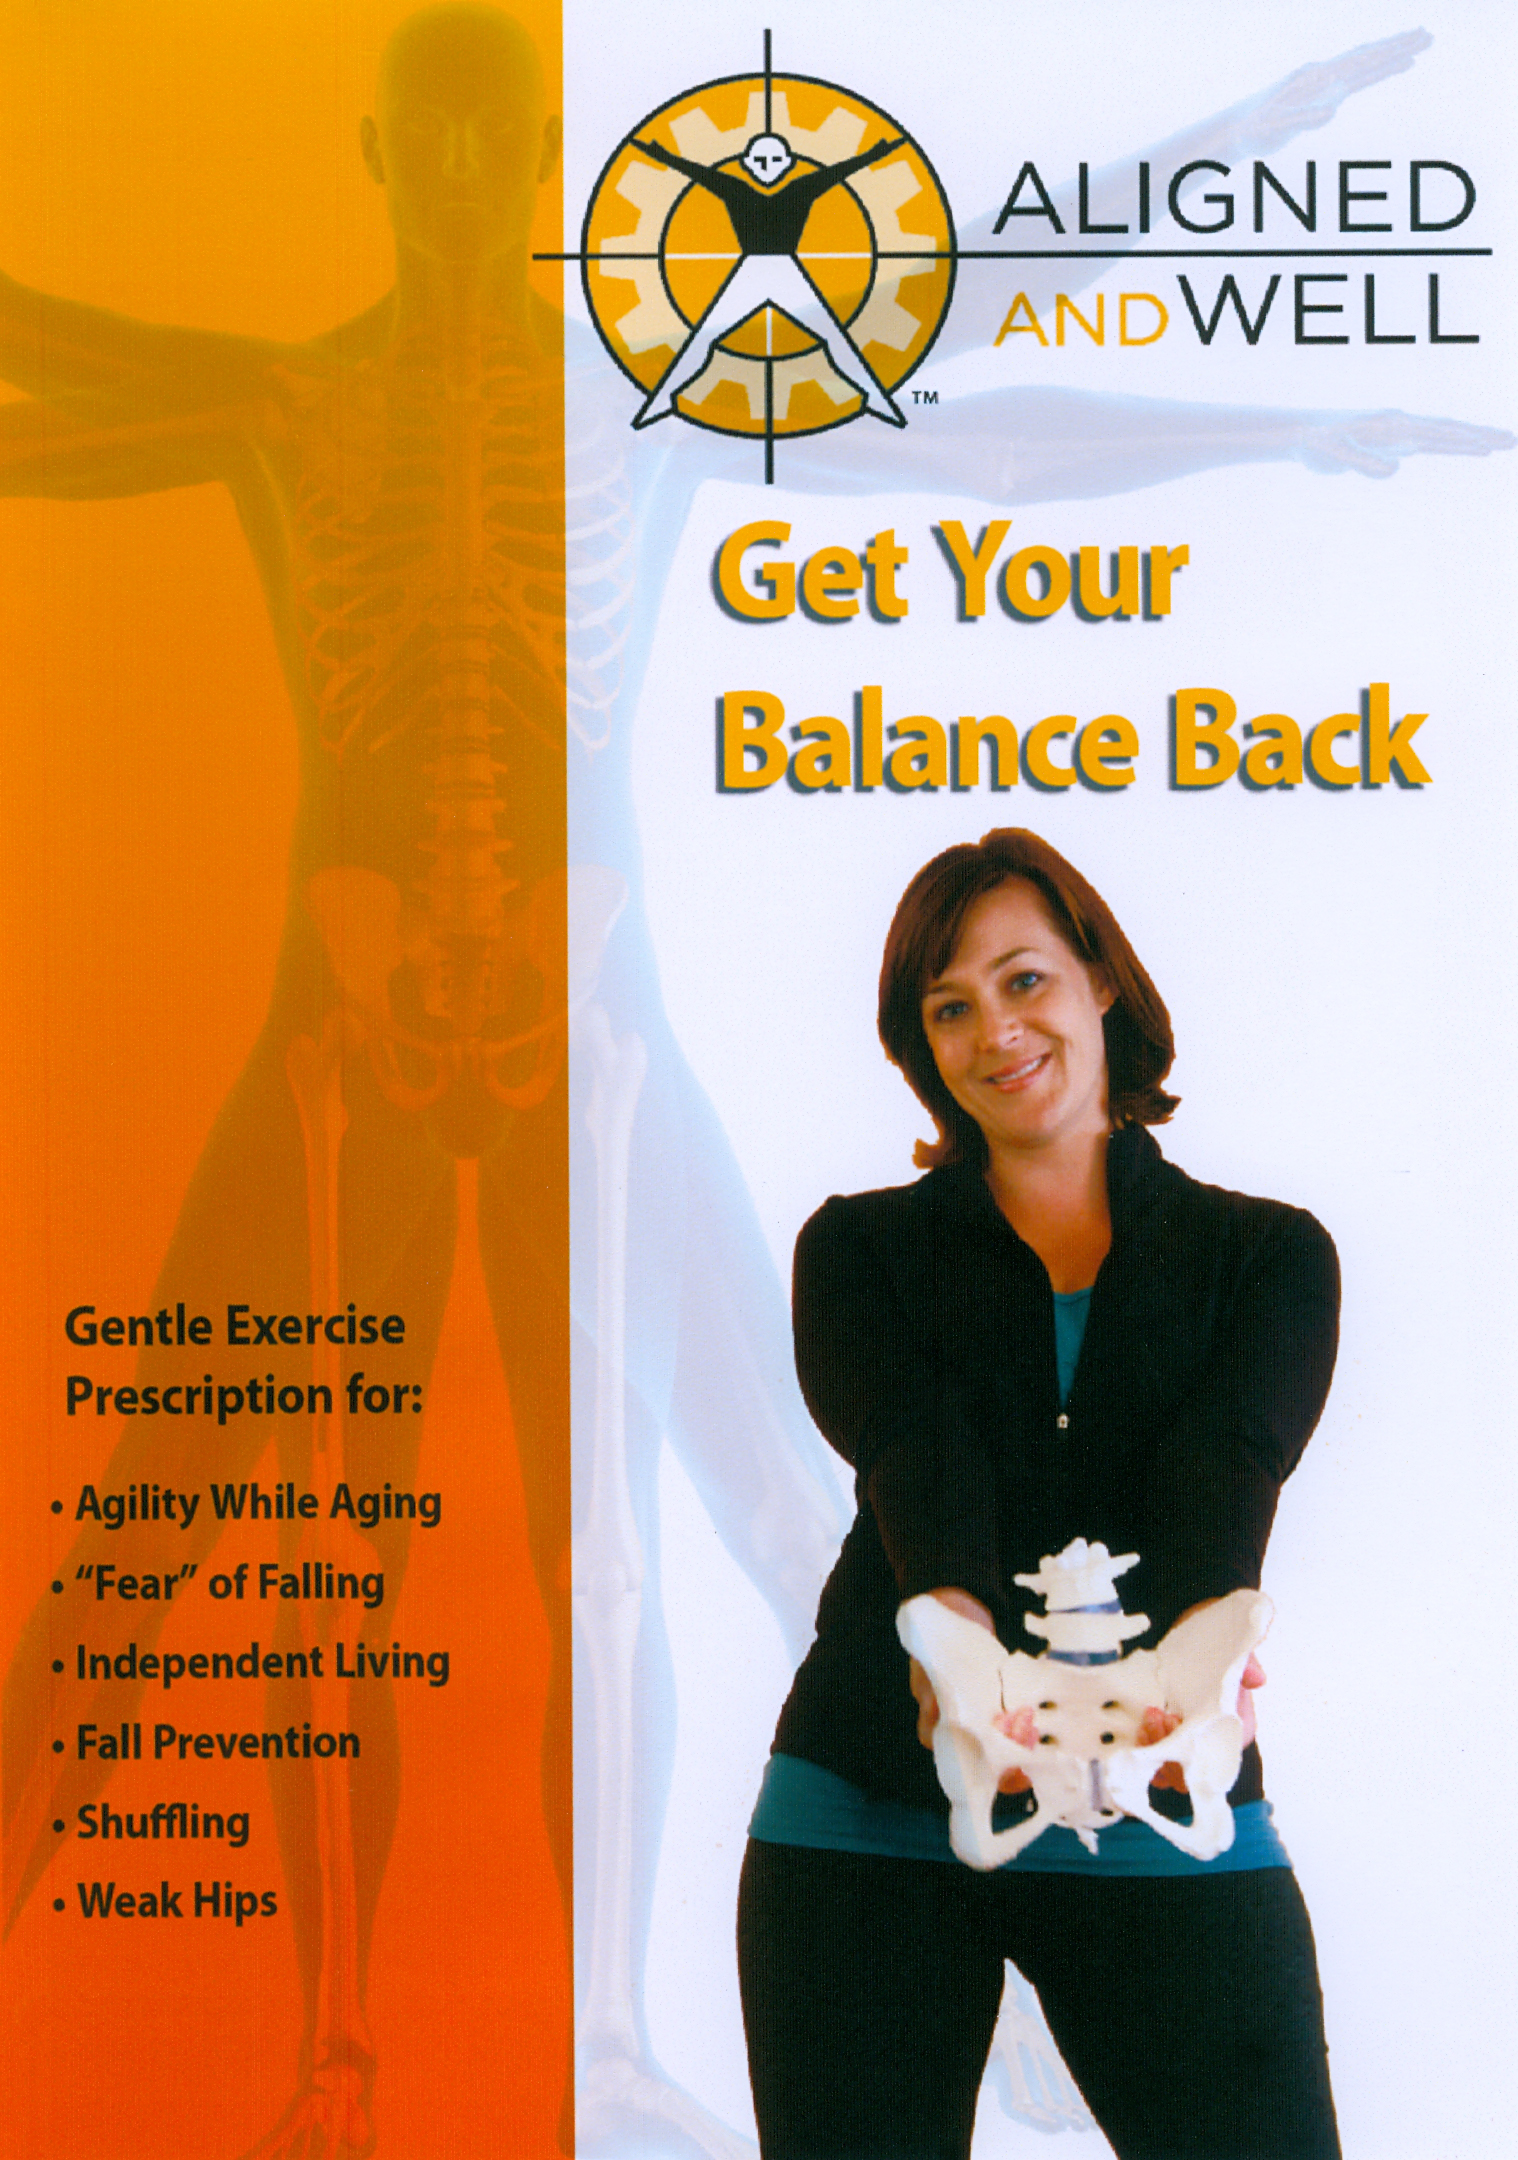 Aligned and Well: Get Your Balance Back